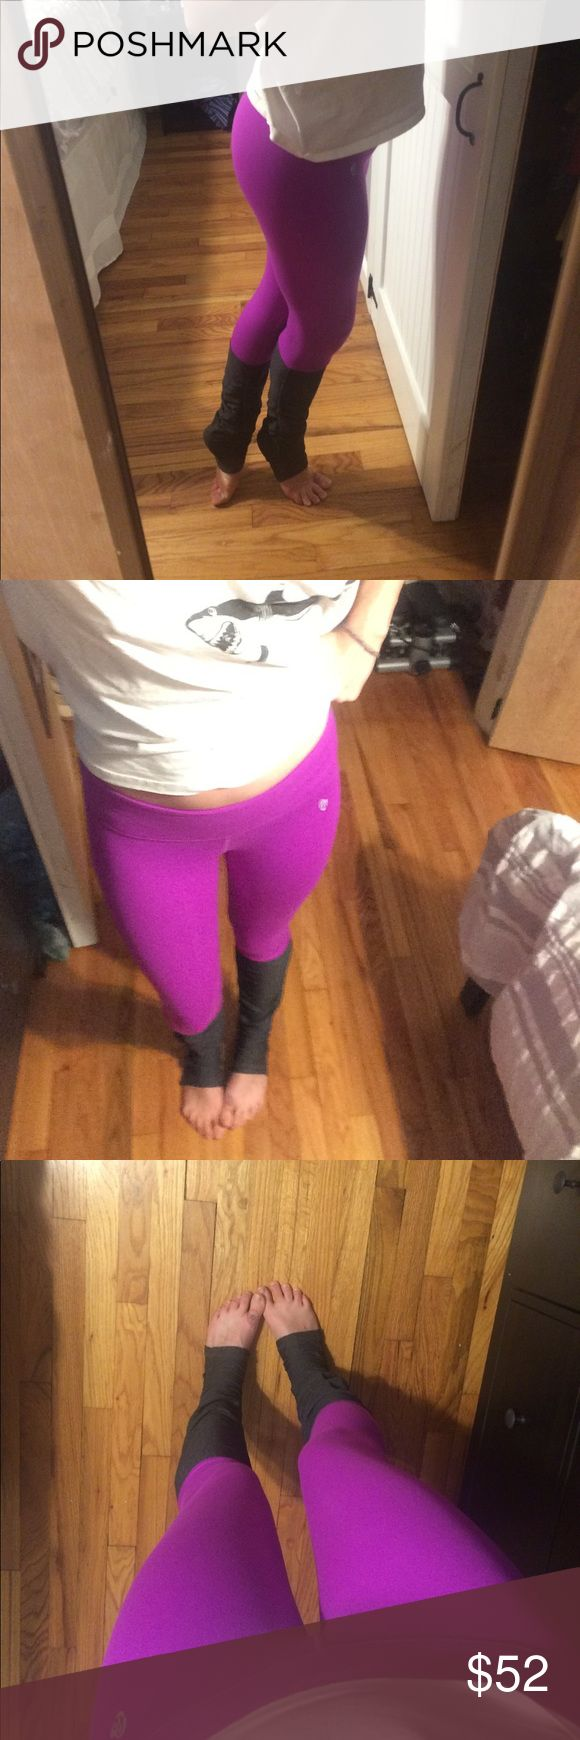 """Ellie activewear bright purple leggings goddess S Bright purple leggings with dark gray cinched bottoms- these are similar to Alo yoga's """"goddess"""" leggings. Fit is spectacular and so comfortable! Perfect for any workout especially barre and yoga! These were worn and washed once, in excellent condition. ellie Pants Leggings"""